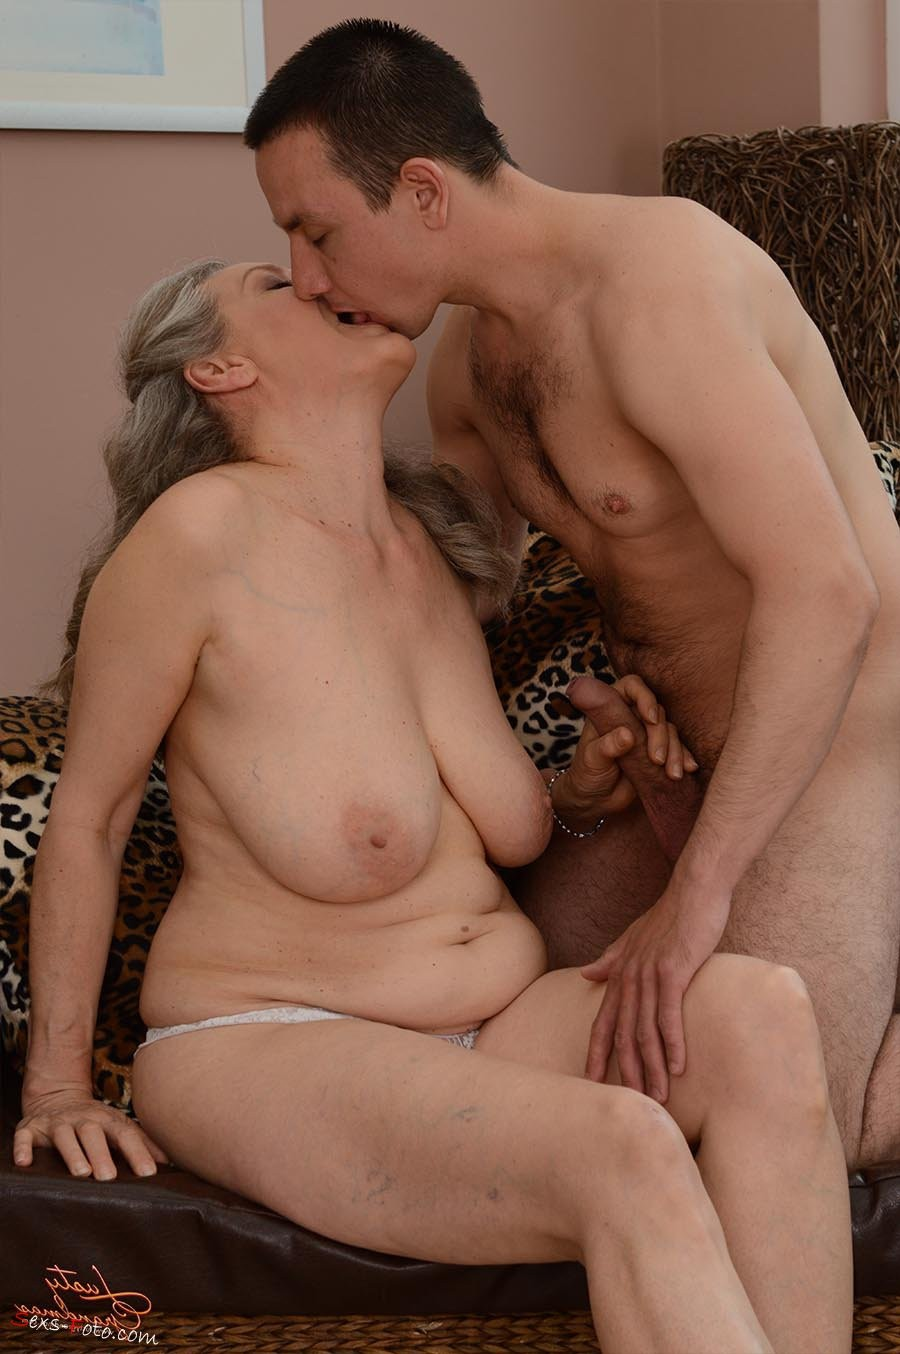 adult only sex all inclusive – Erotic